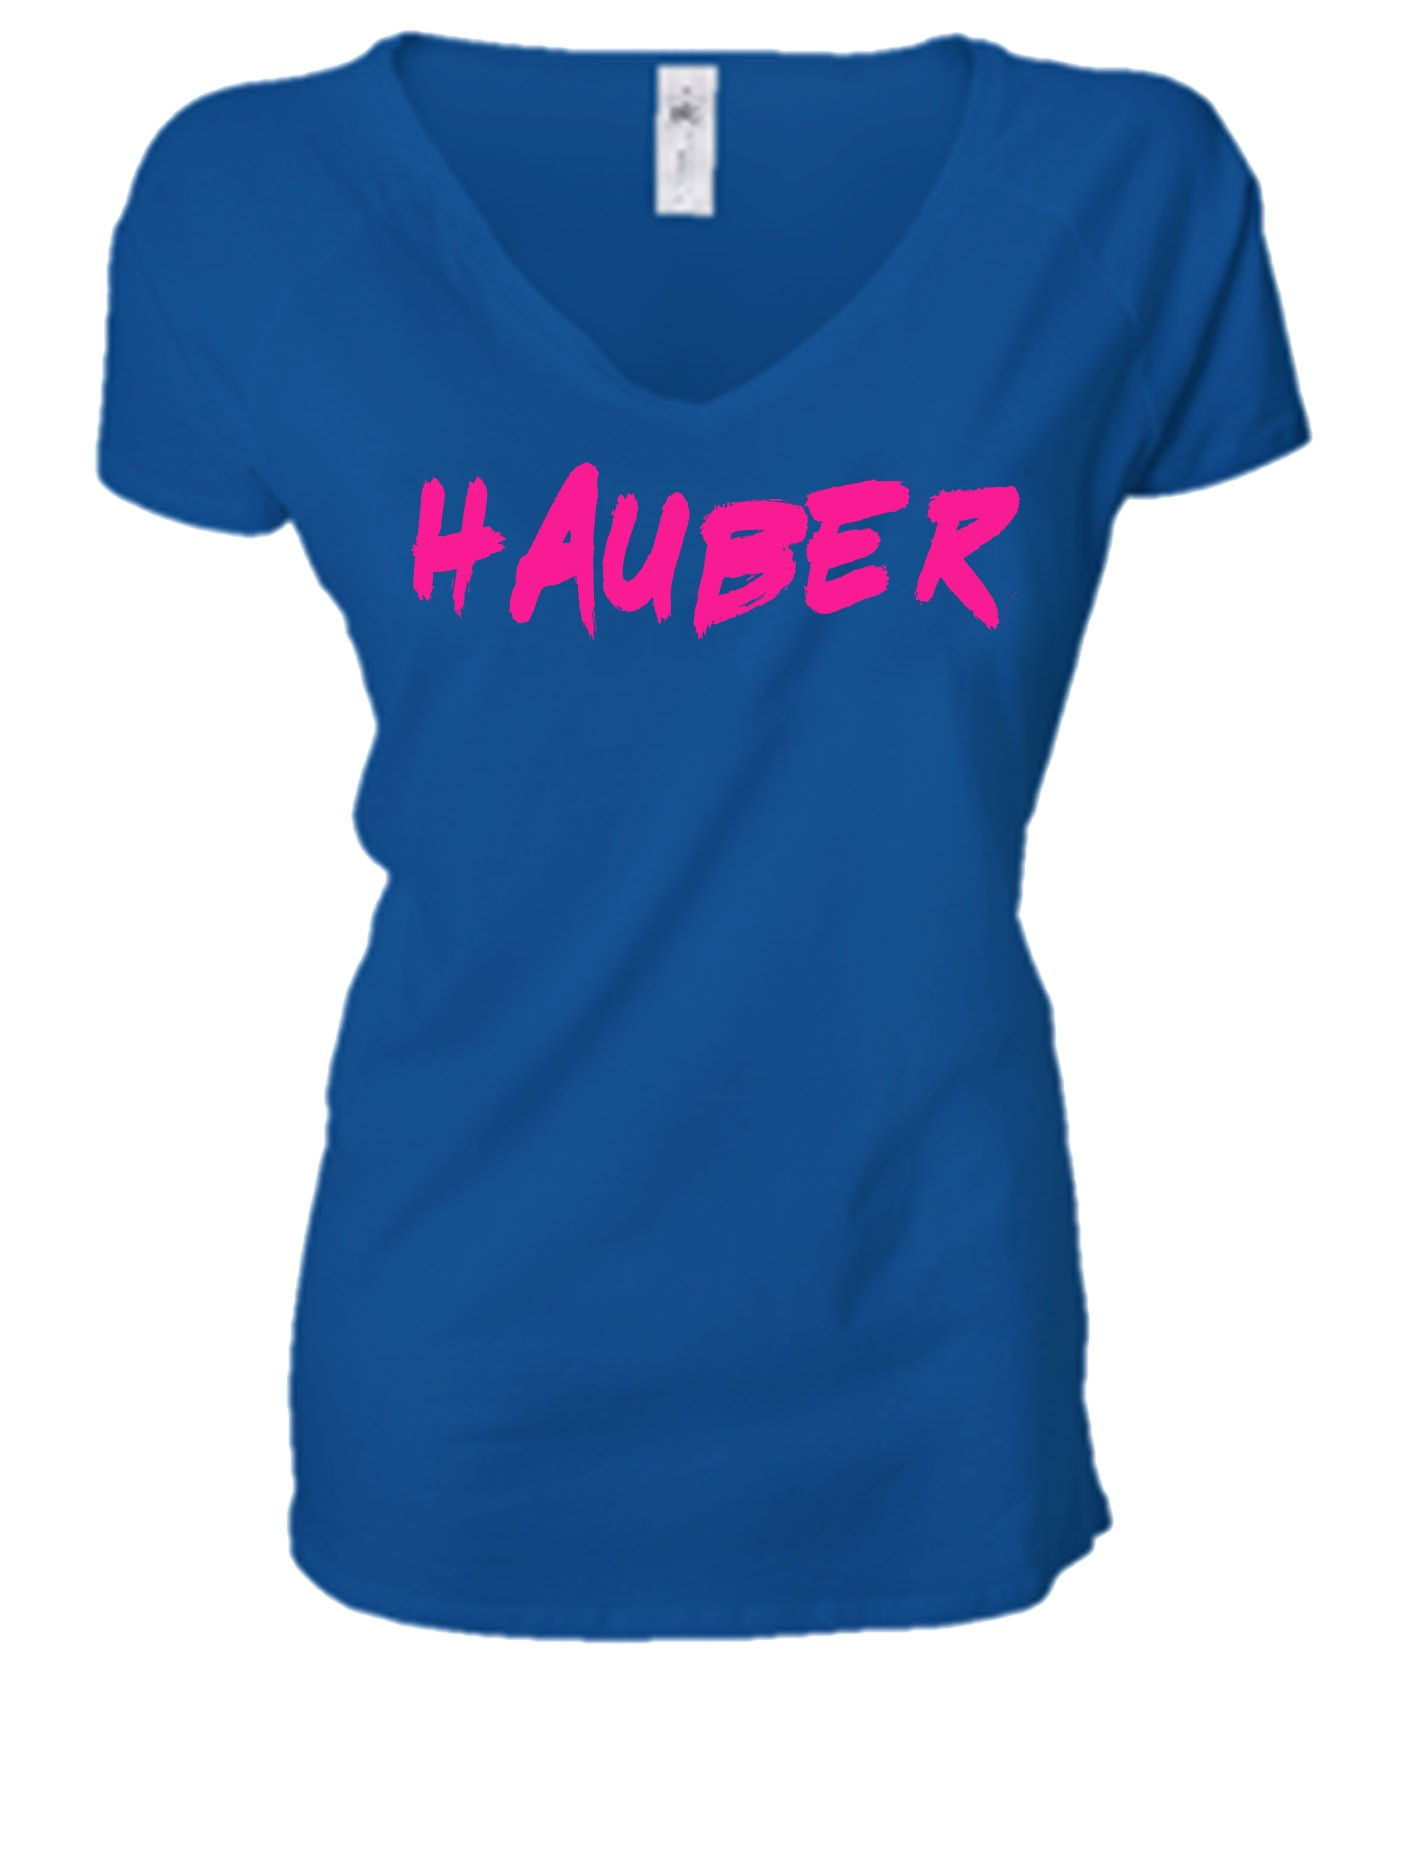 LADIES PREMIUM V NECK T-SHIRT HAUBER